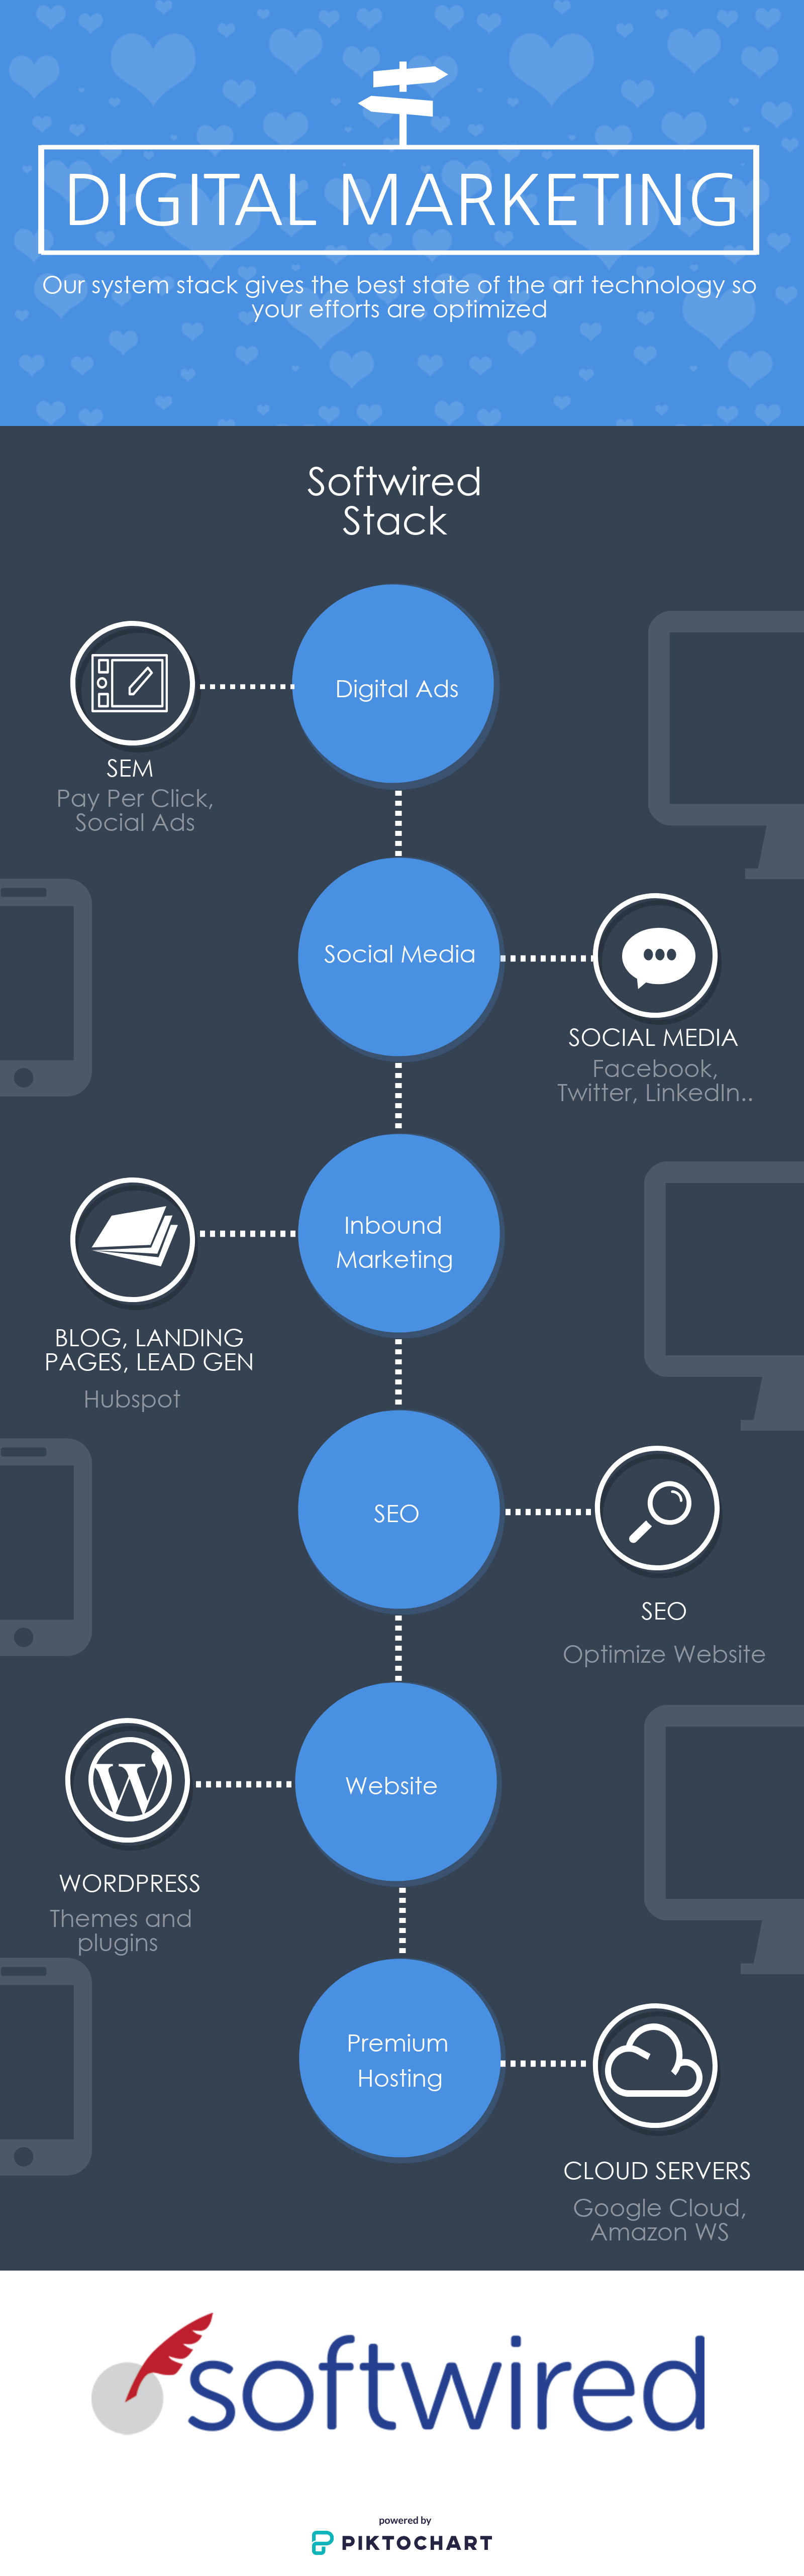 Softwired Digital Marketing Stack